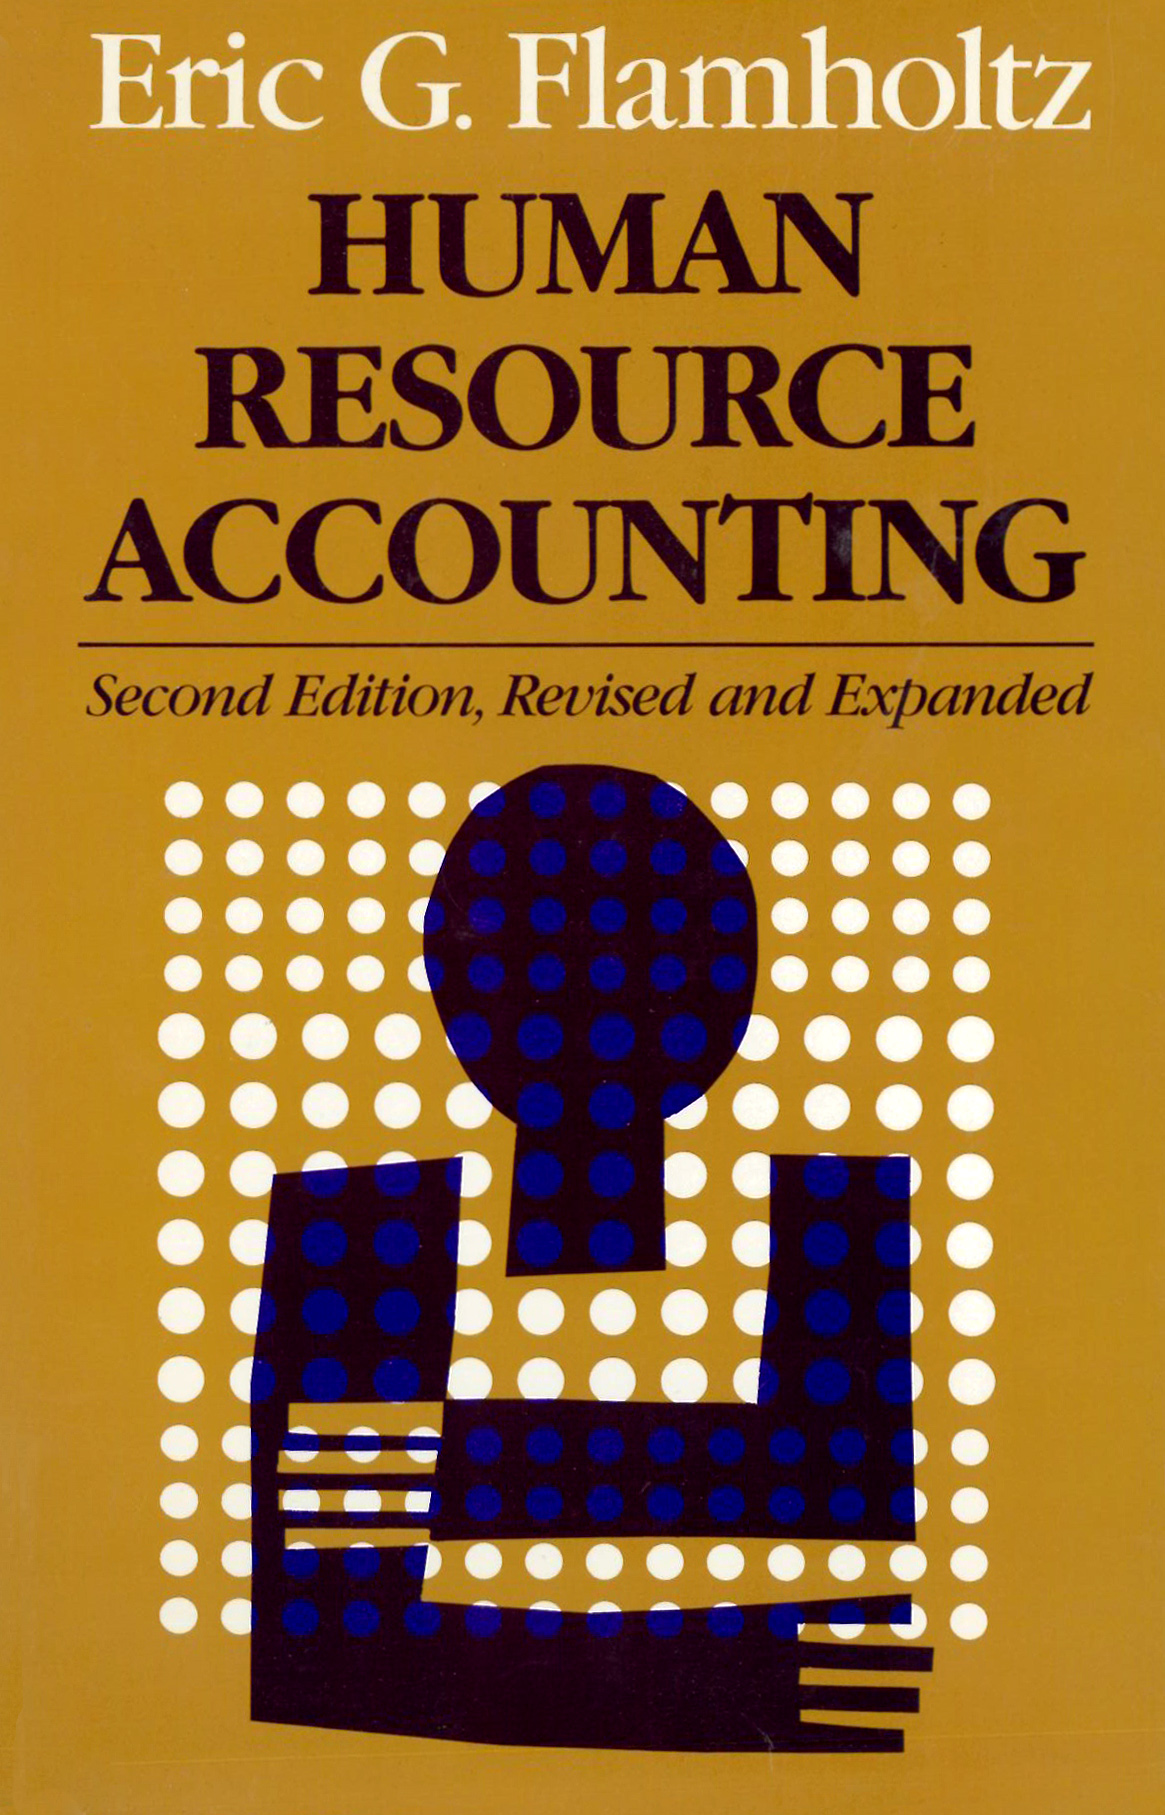 Human Resource Accounting[3].jpg